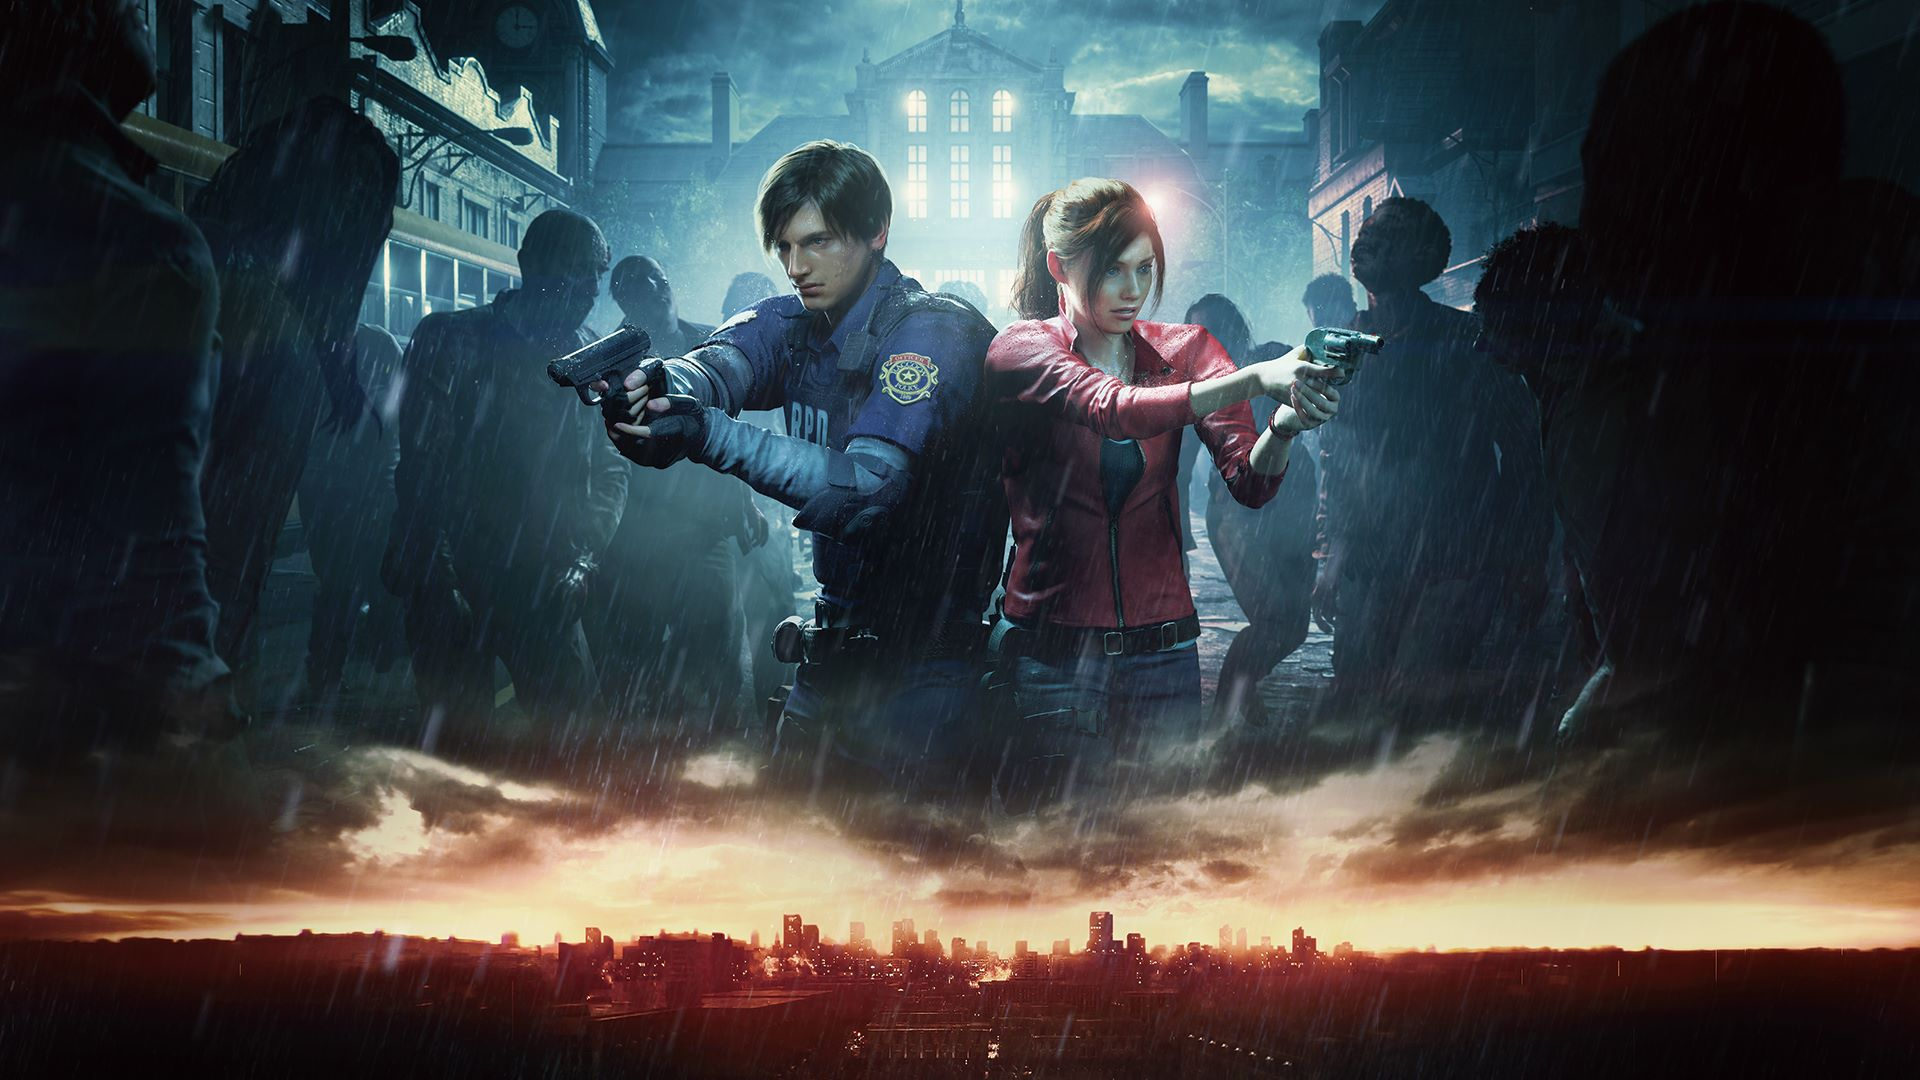 resident evil 2, remake, local splitscreen co-op multiplayer